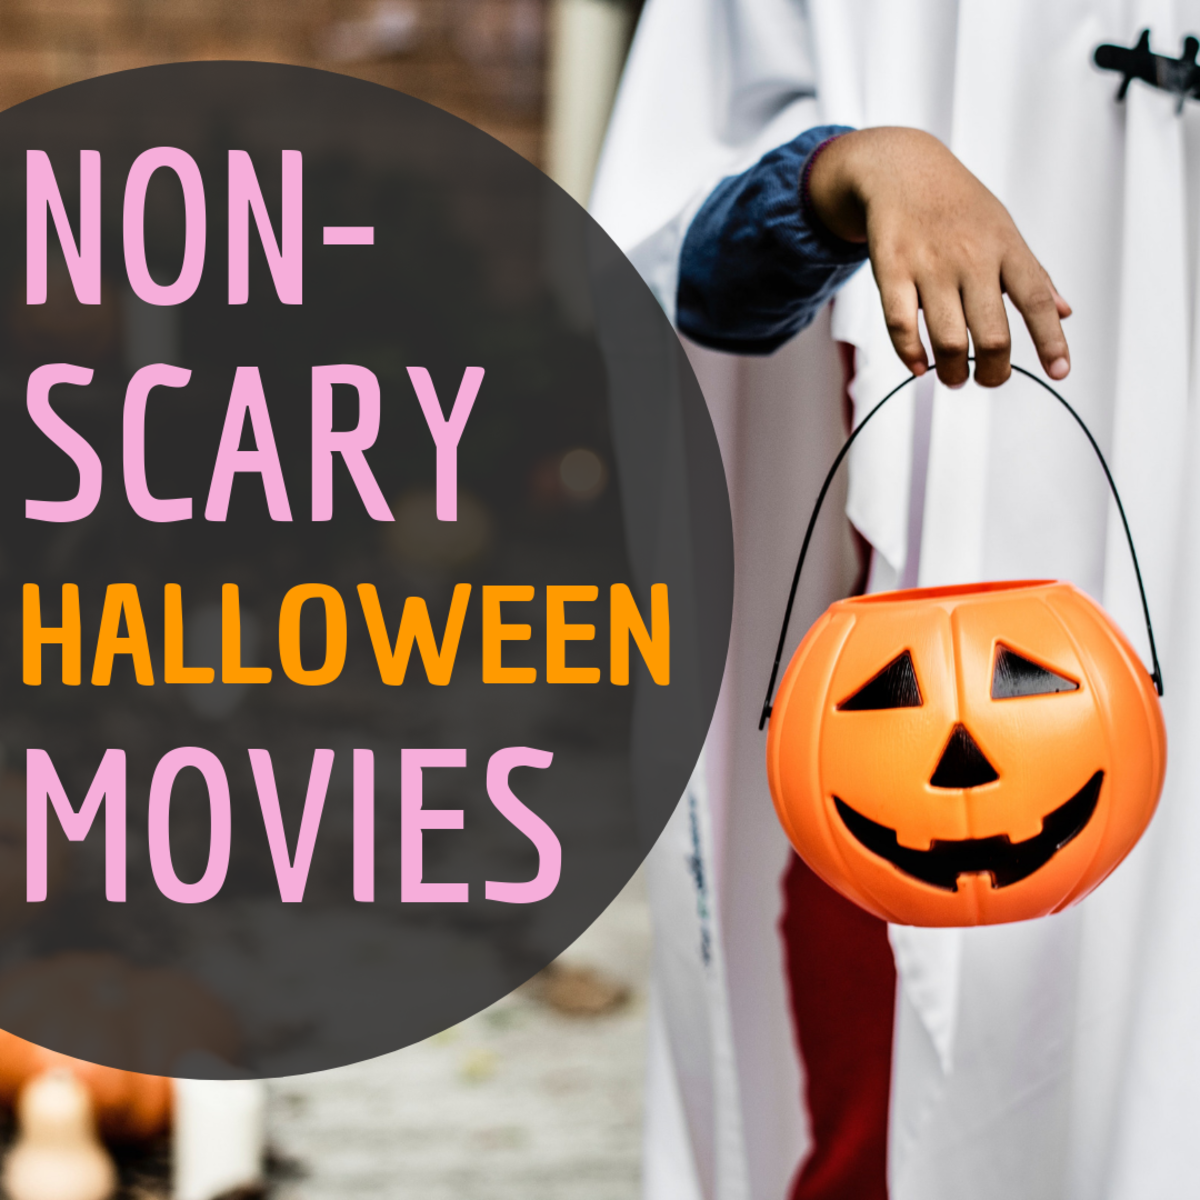 Don't like horror movies? You can still get into the Halloween spirit.